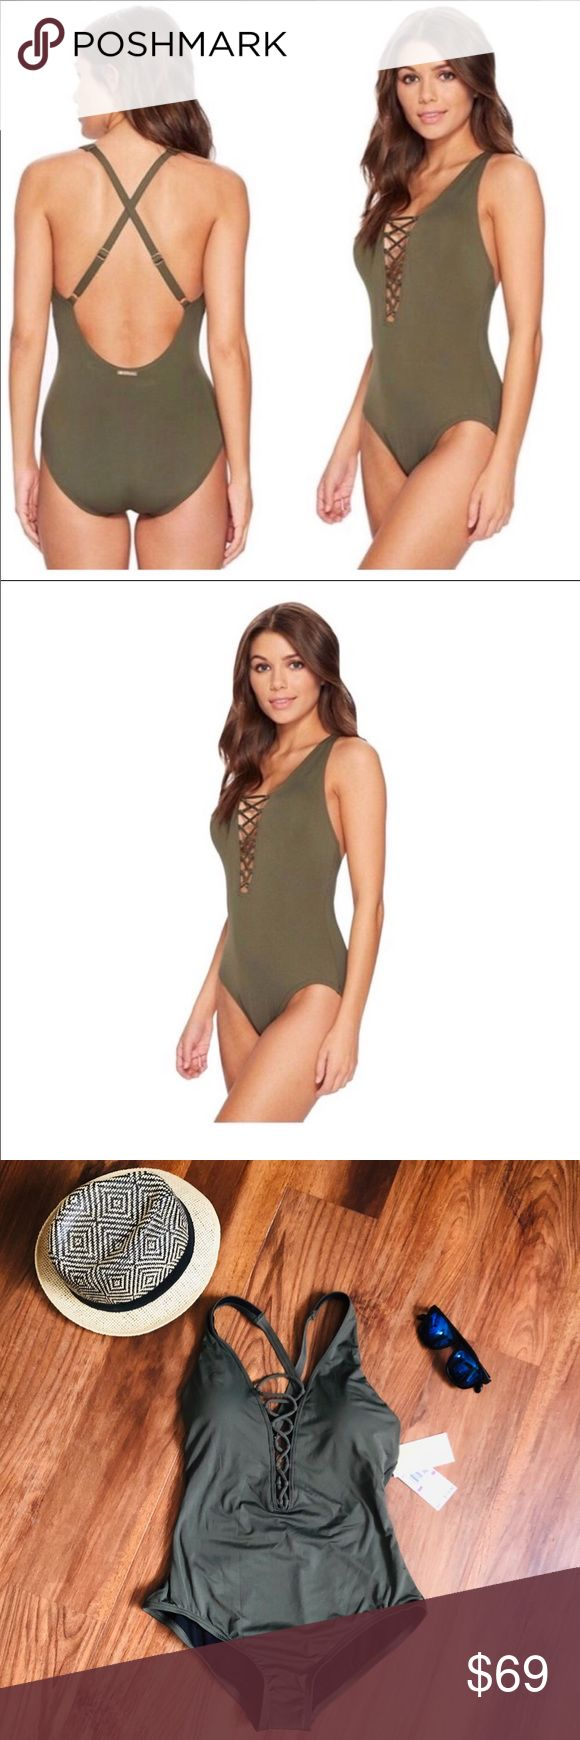 NWT Michael Kors Swimsuit 2019 Cruise Collection Super trendy New with Tags Mich…